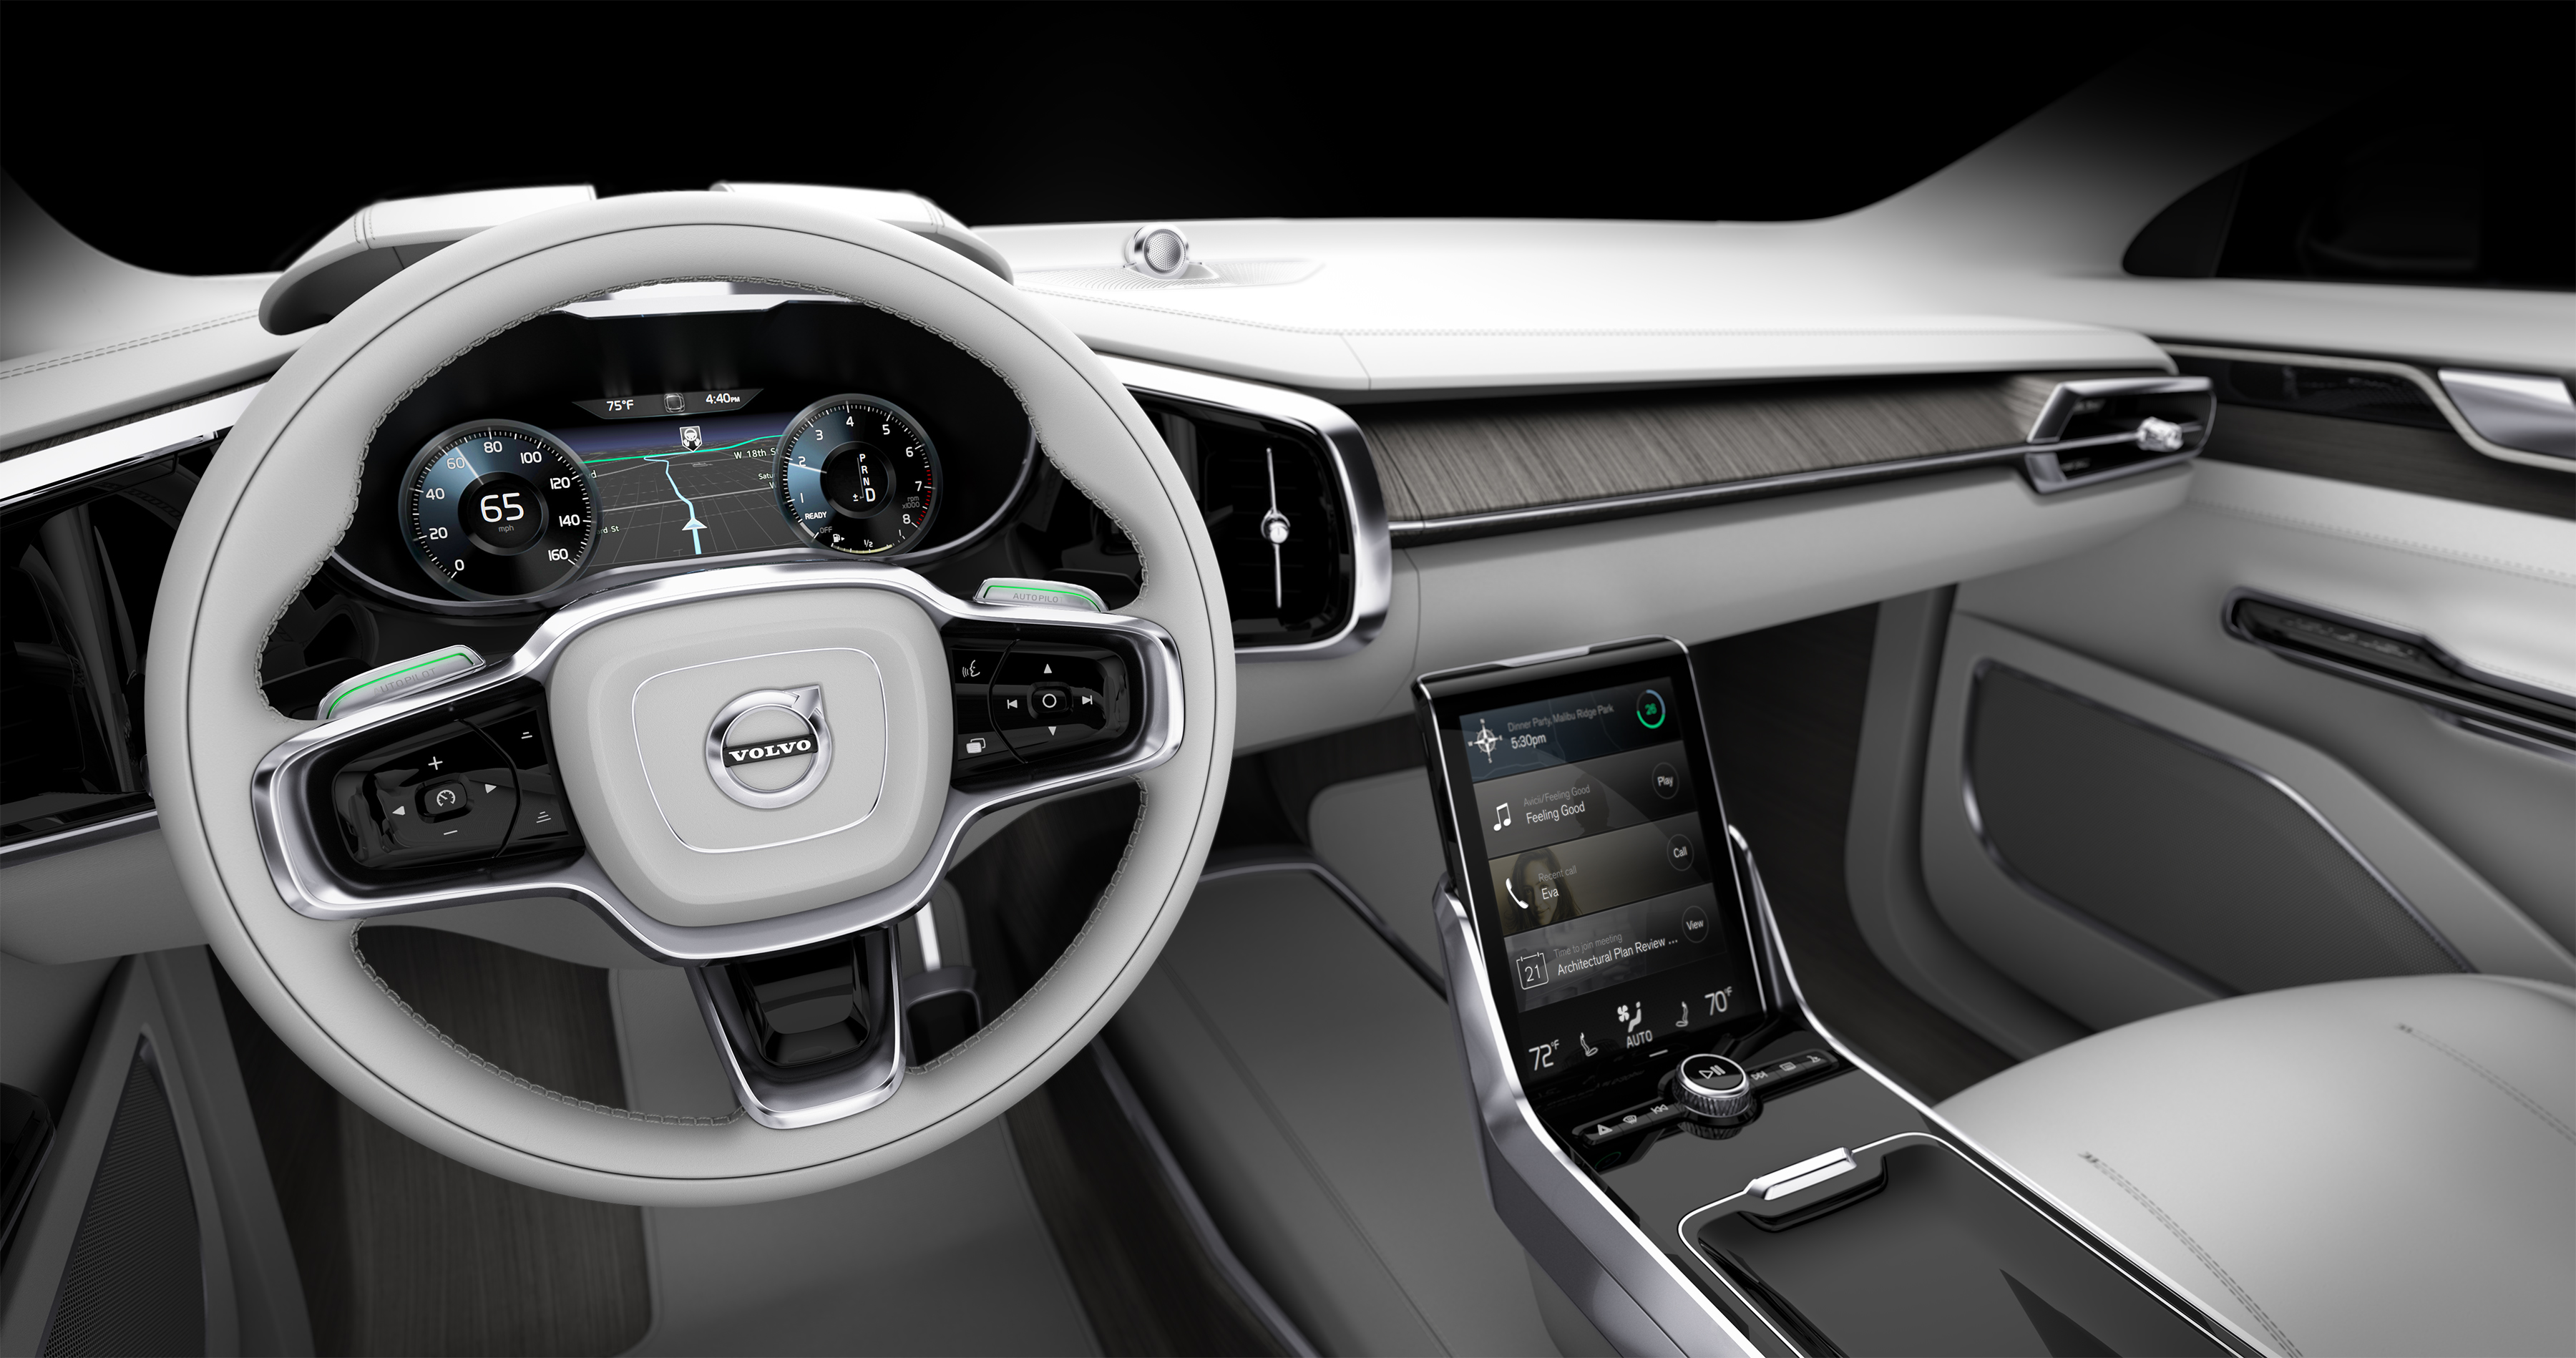 volvo 39 s new autonomous interior car ergonomics knw your latest. Black Bedroom Furniture Sets. Home Design Ideas